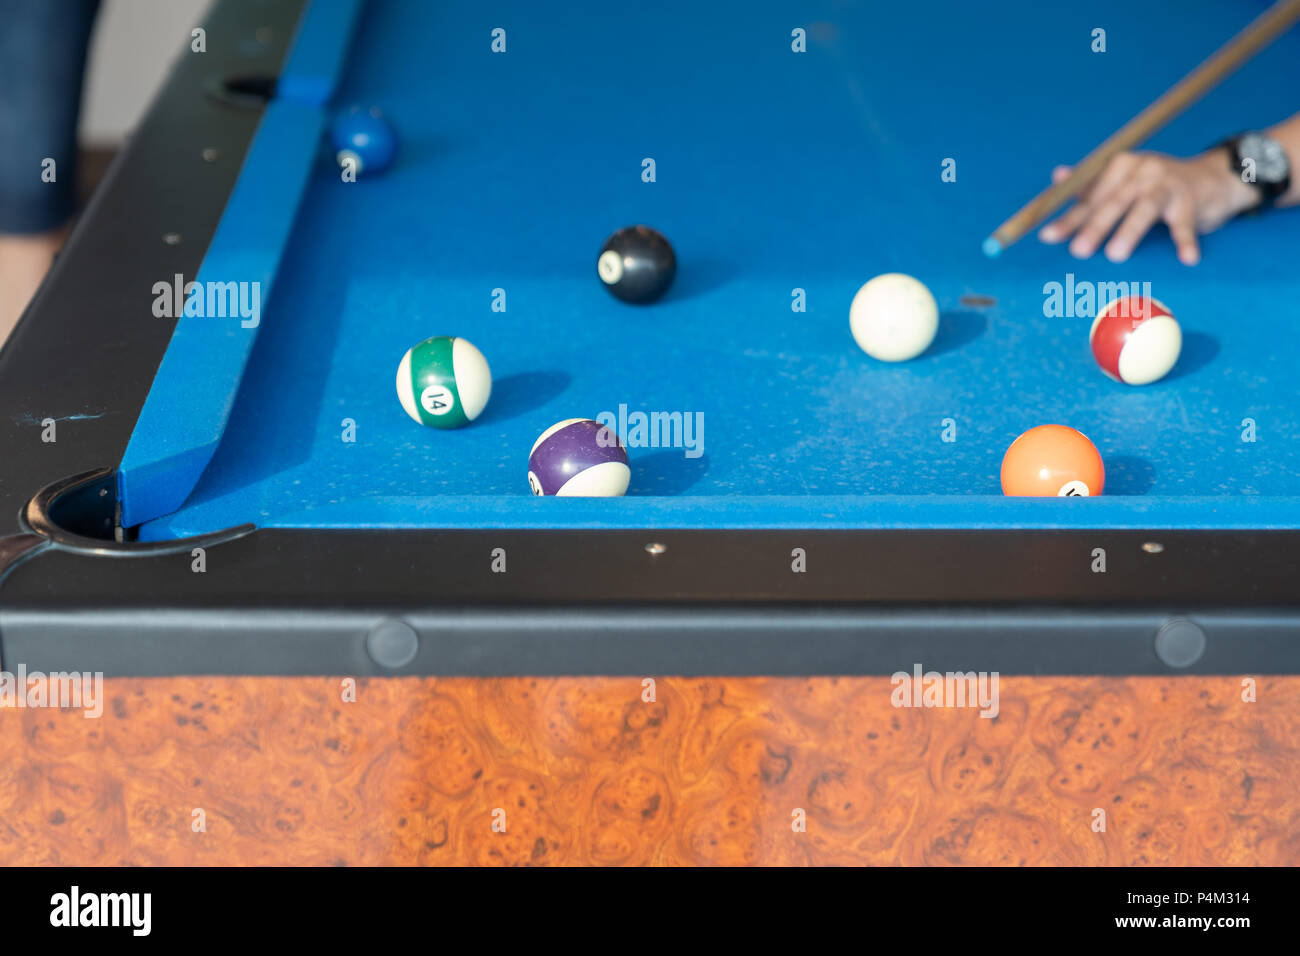 Vintage Pool Ball On Blue Table Background Stock Photo - Electronic pool table